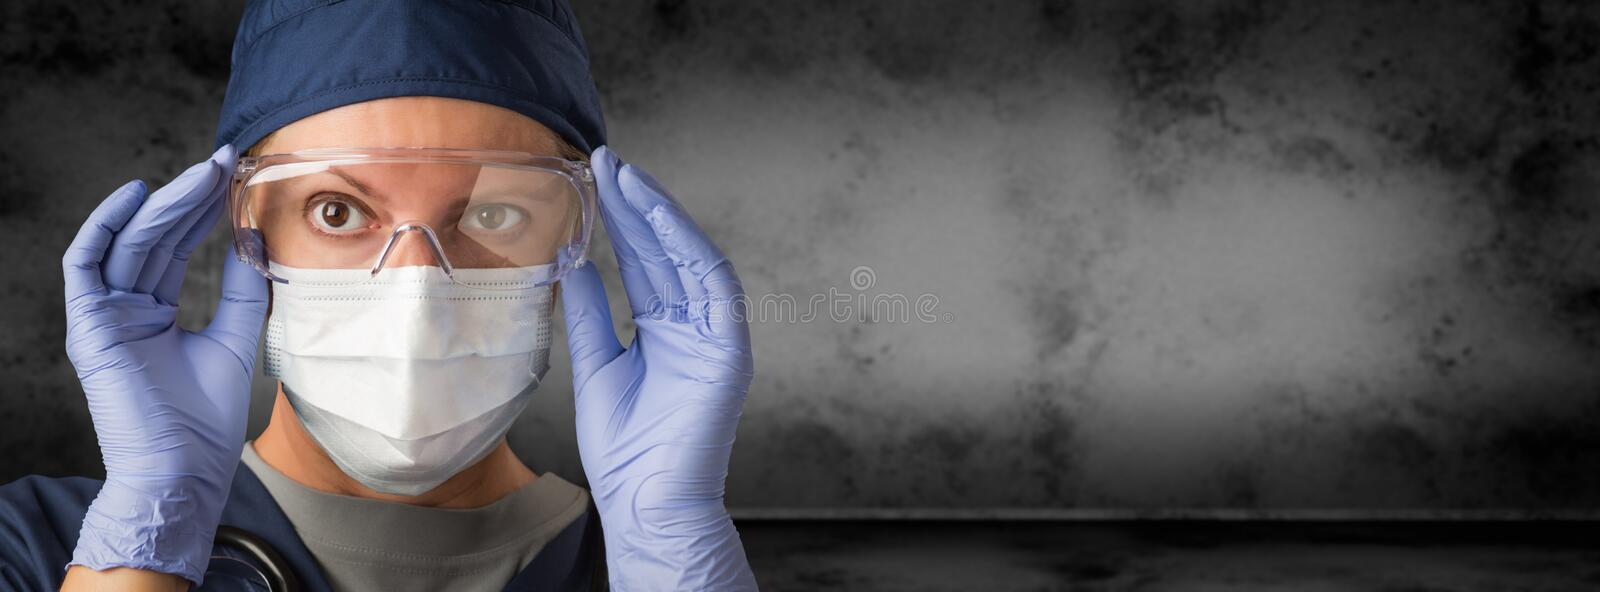 Female Doctor or Nurse Wearing Goggles, Surgical Gloves and Face Mask Against Grungy Dark Background Banner stock image